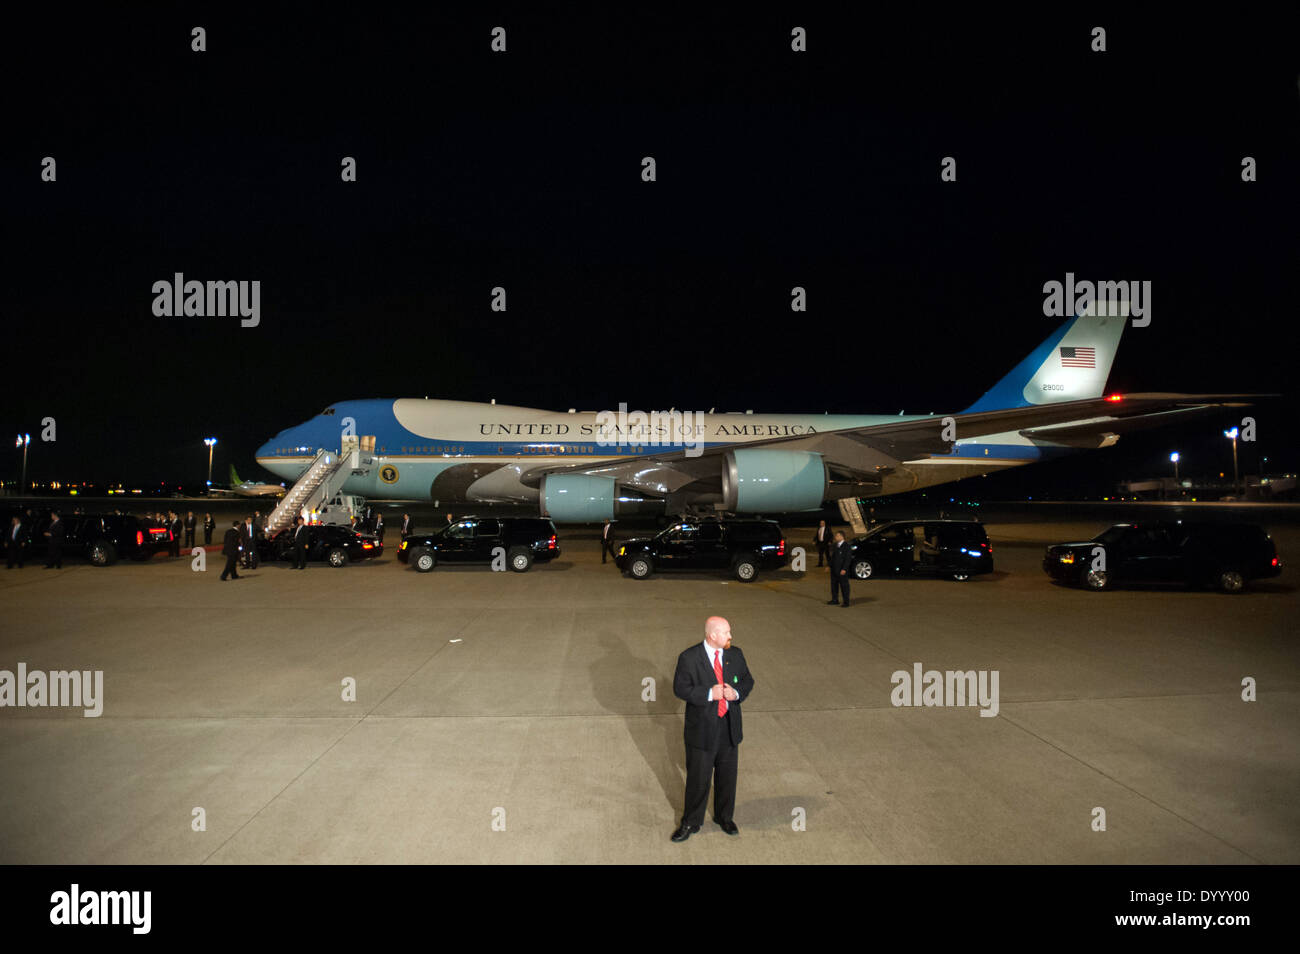 Air Force One Touches Down in Tokyo - Stock Image